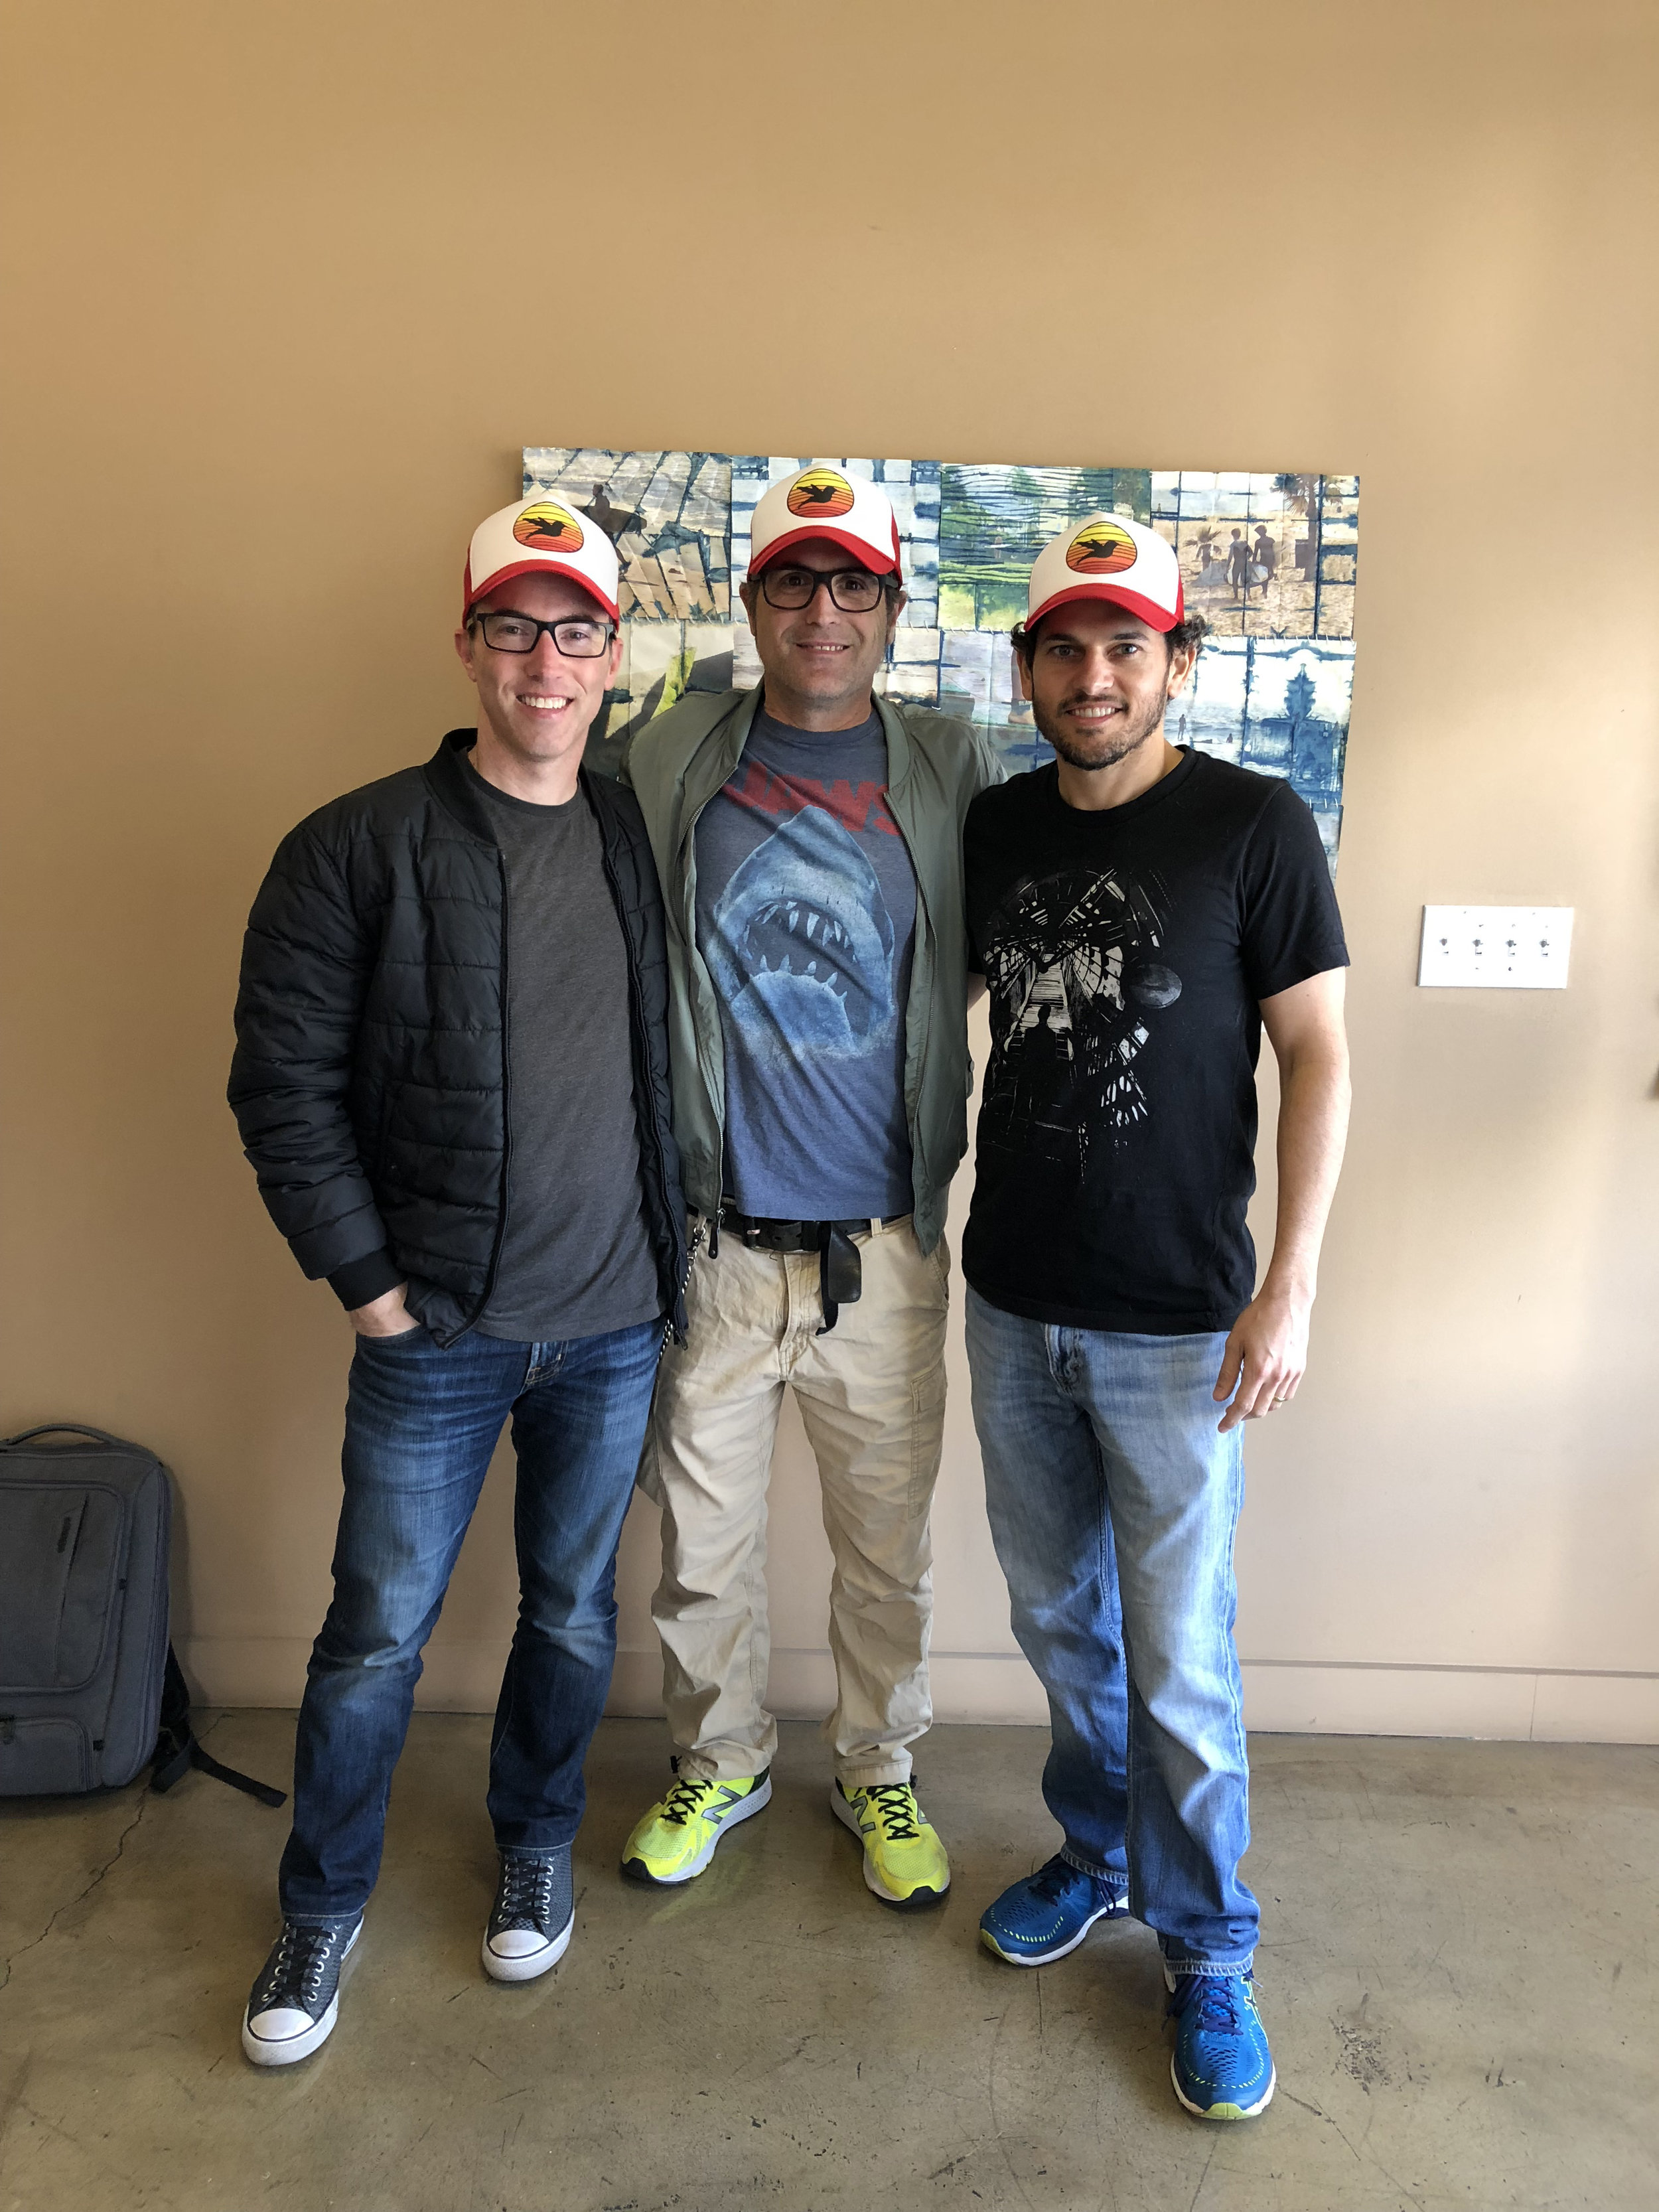 The VFX producer, Terron Pratt, Marion, and the head VFX Supervisor and 2nd Unit Director, Jabbar Raisani rocking their favorite hats.:)